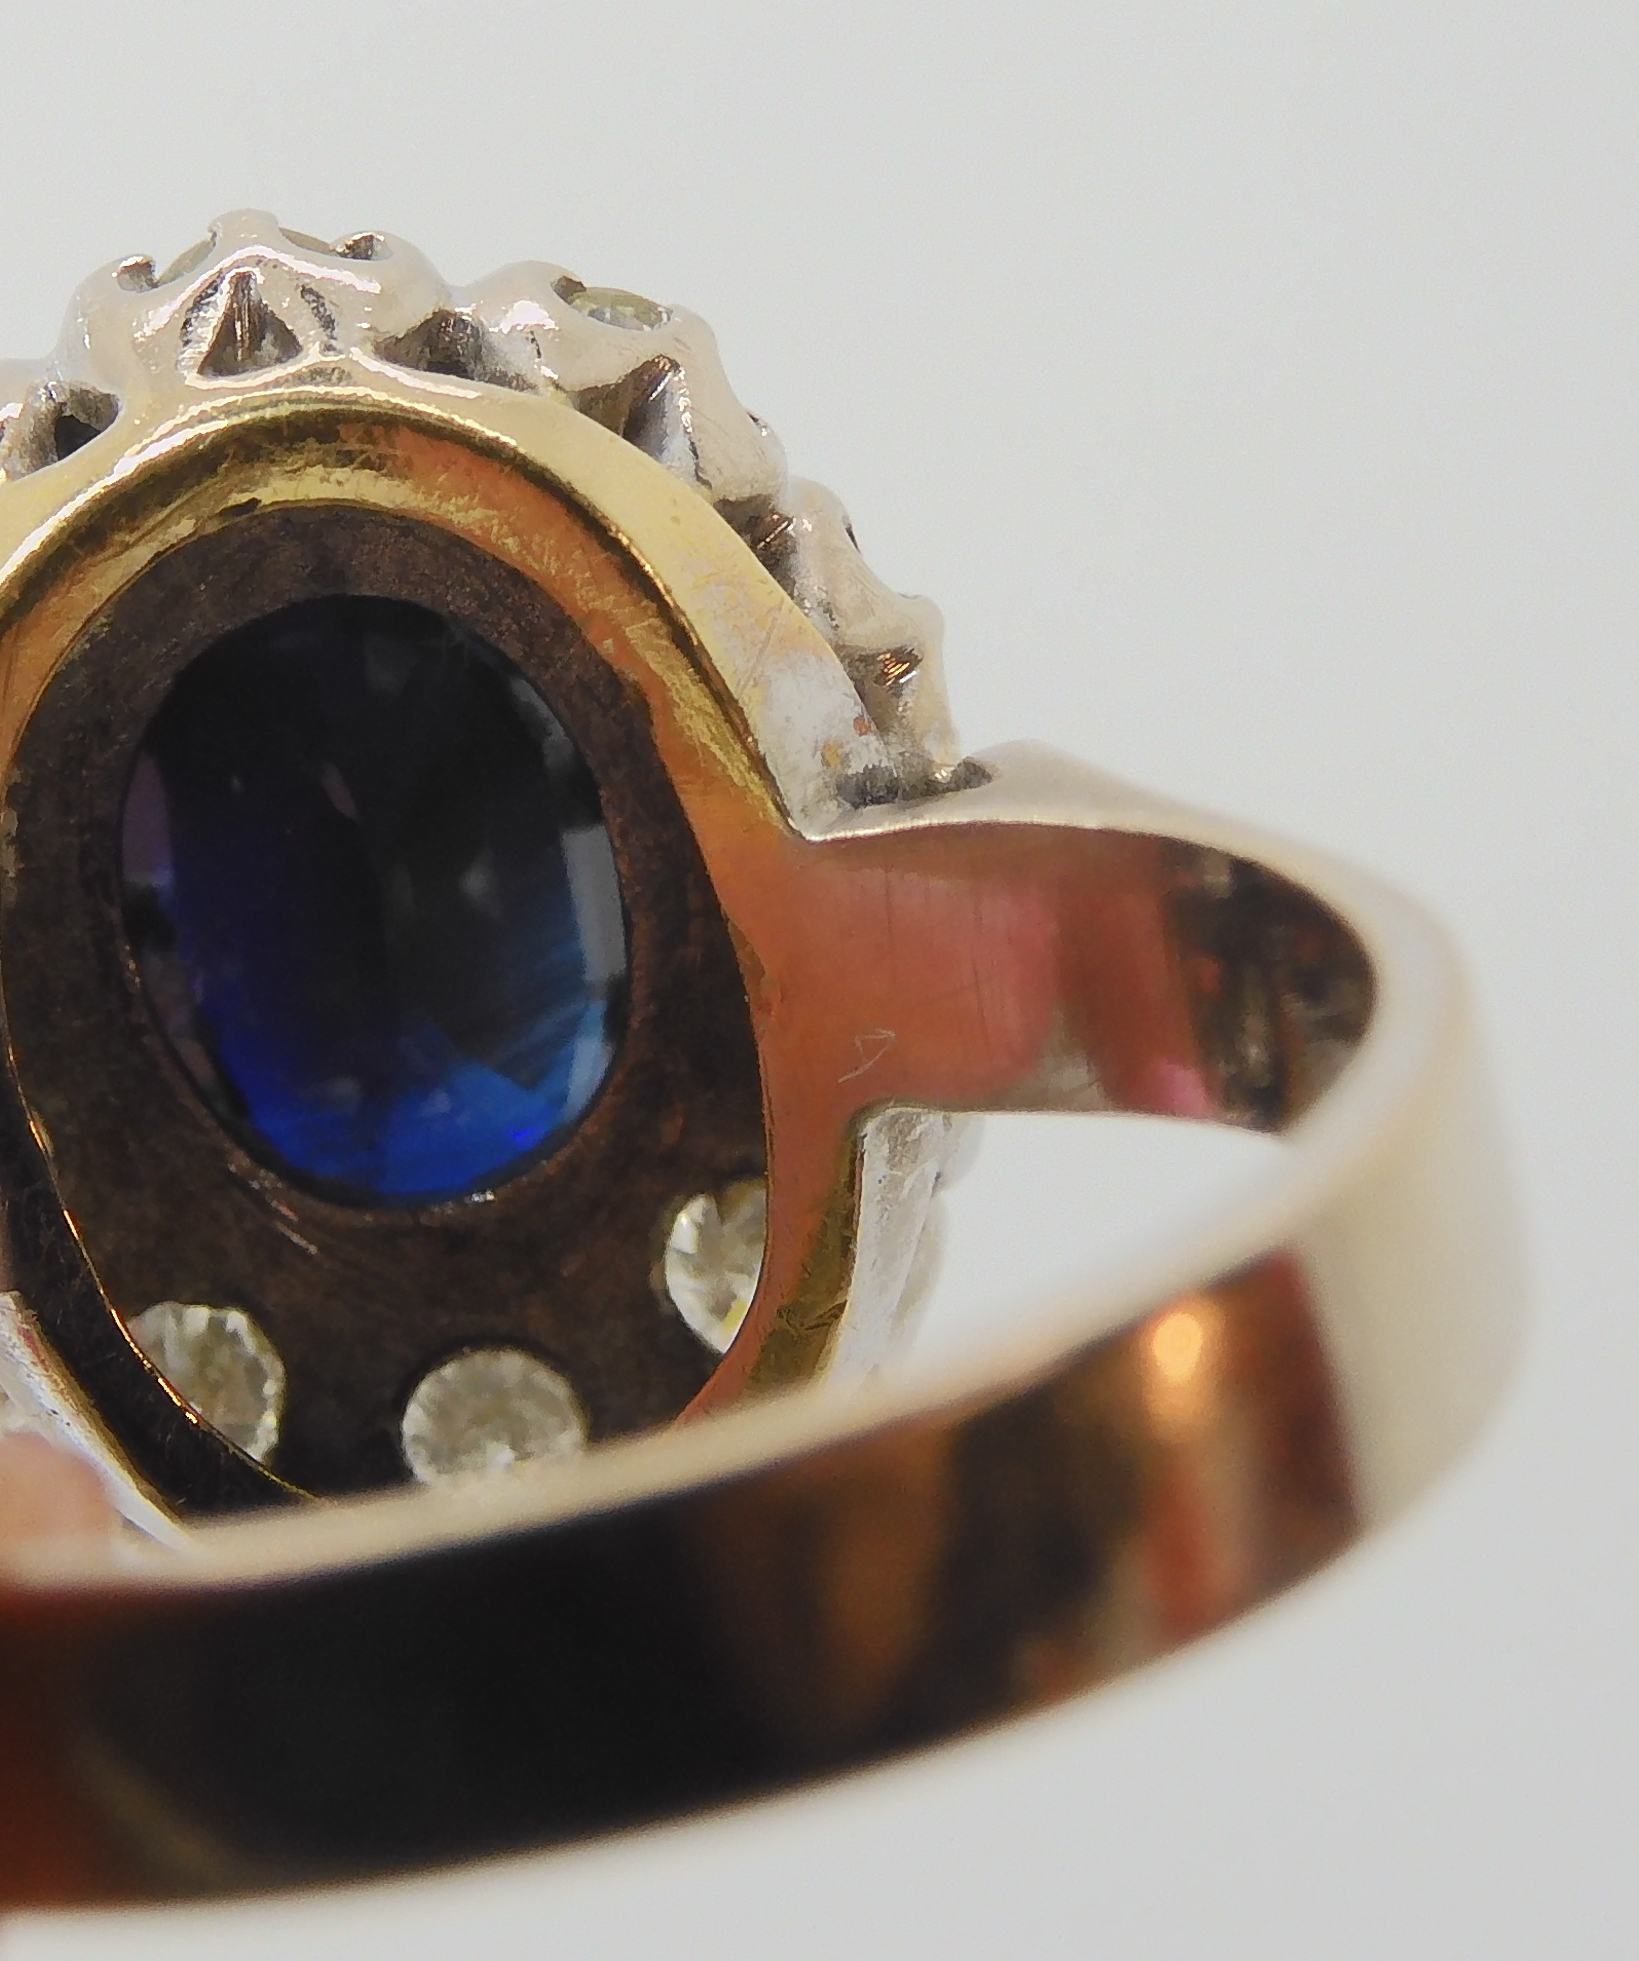 AN 18CT WHITE GOLD SAPPHIRE AND DIAMOND CLUSTER RING set with estimated approx 0.50cts of - Image 2 of 8